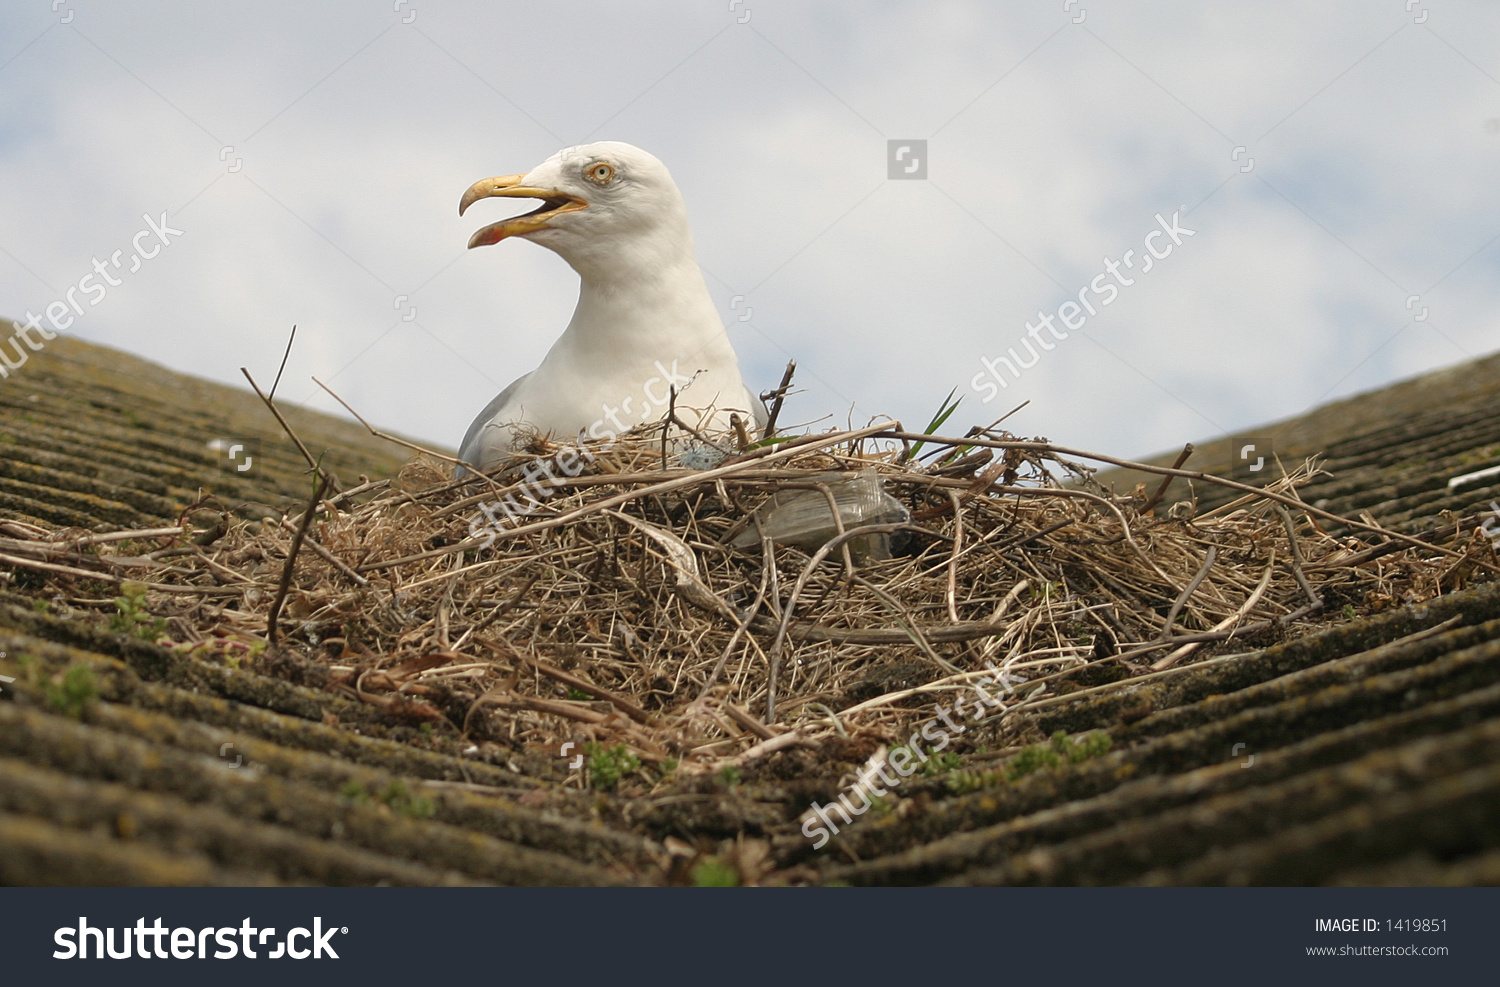 Seagull Sat On Nest. House Roof Uk. Stock Photo 1419851 : Shutterstock.